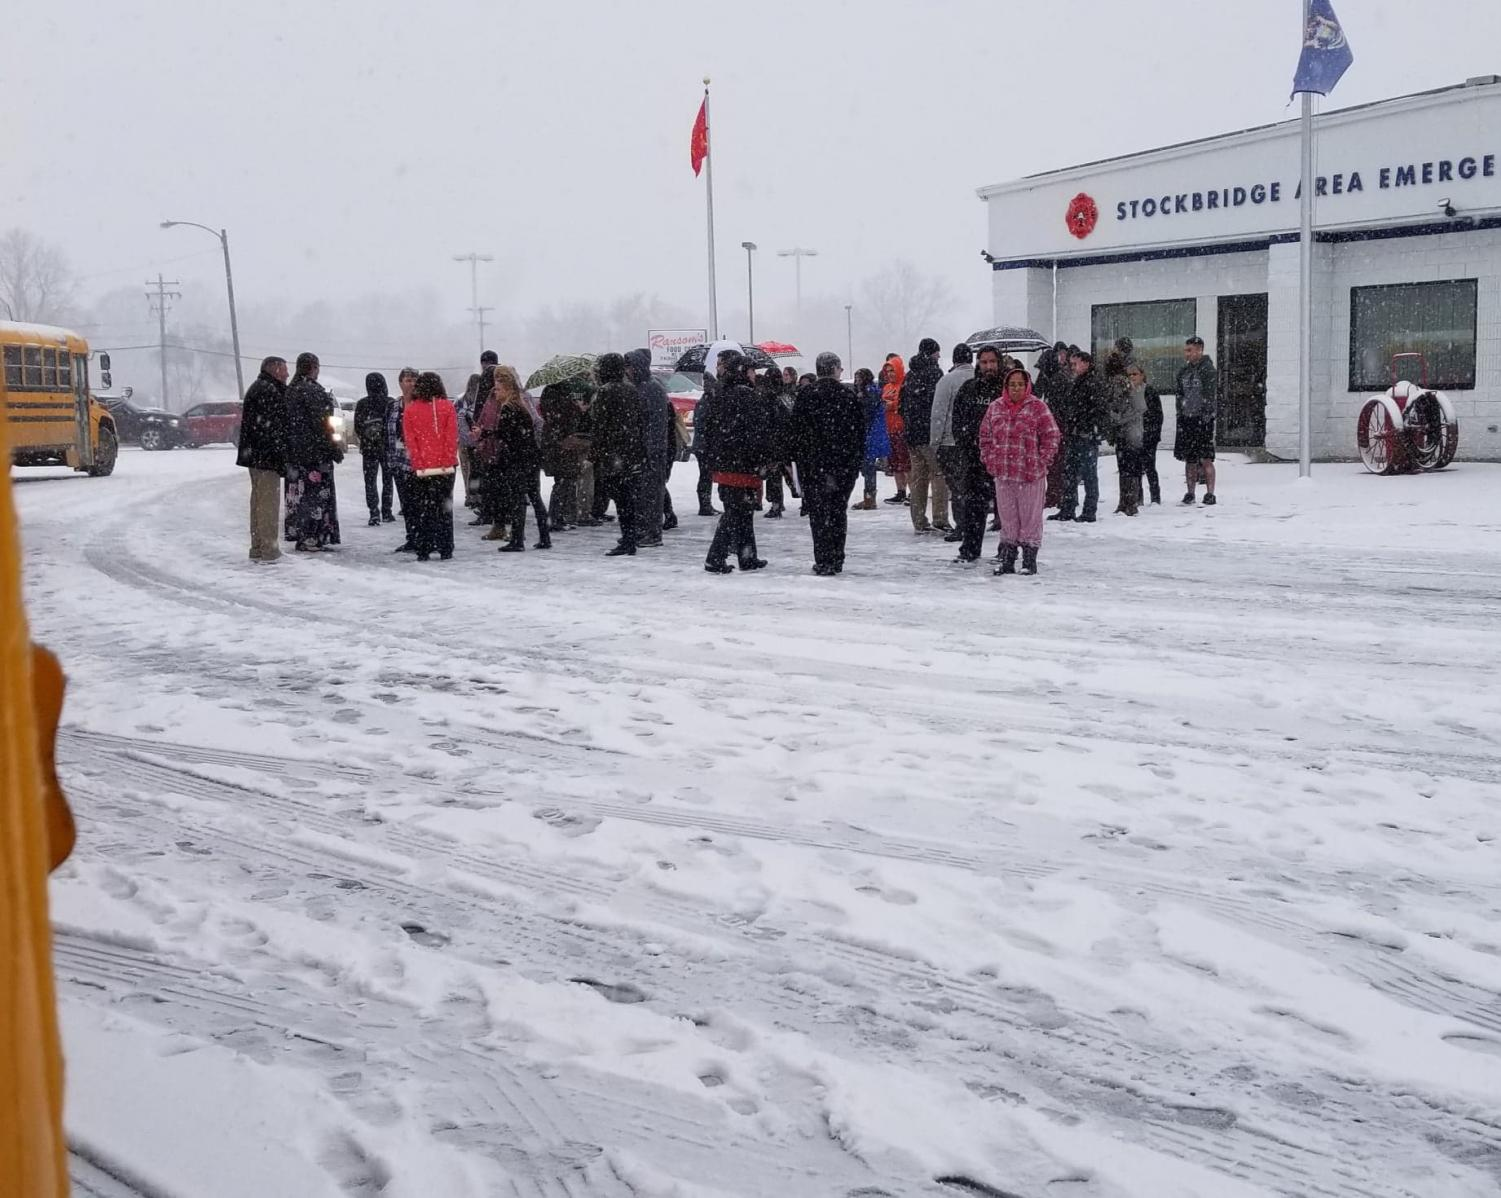 During a rare November snow storm, all of the staff and students evacuate to the S.A.E.S.A site as the bomb task force team checks the junior/senior high building. Students are held on buses until family members sign them out or until the bus takes them home.